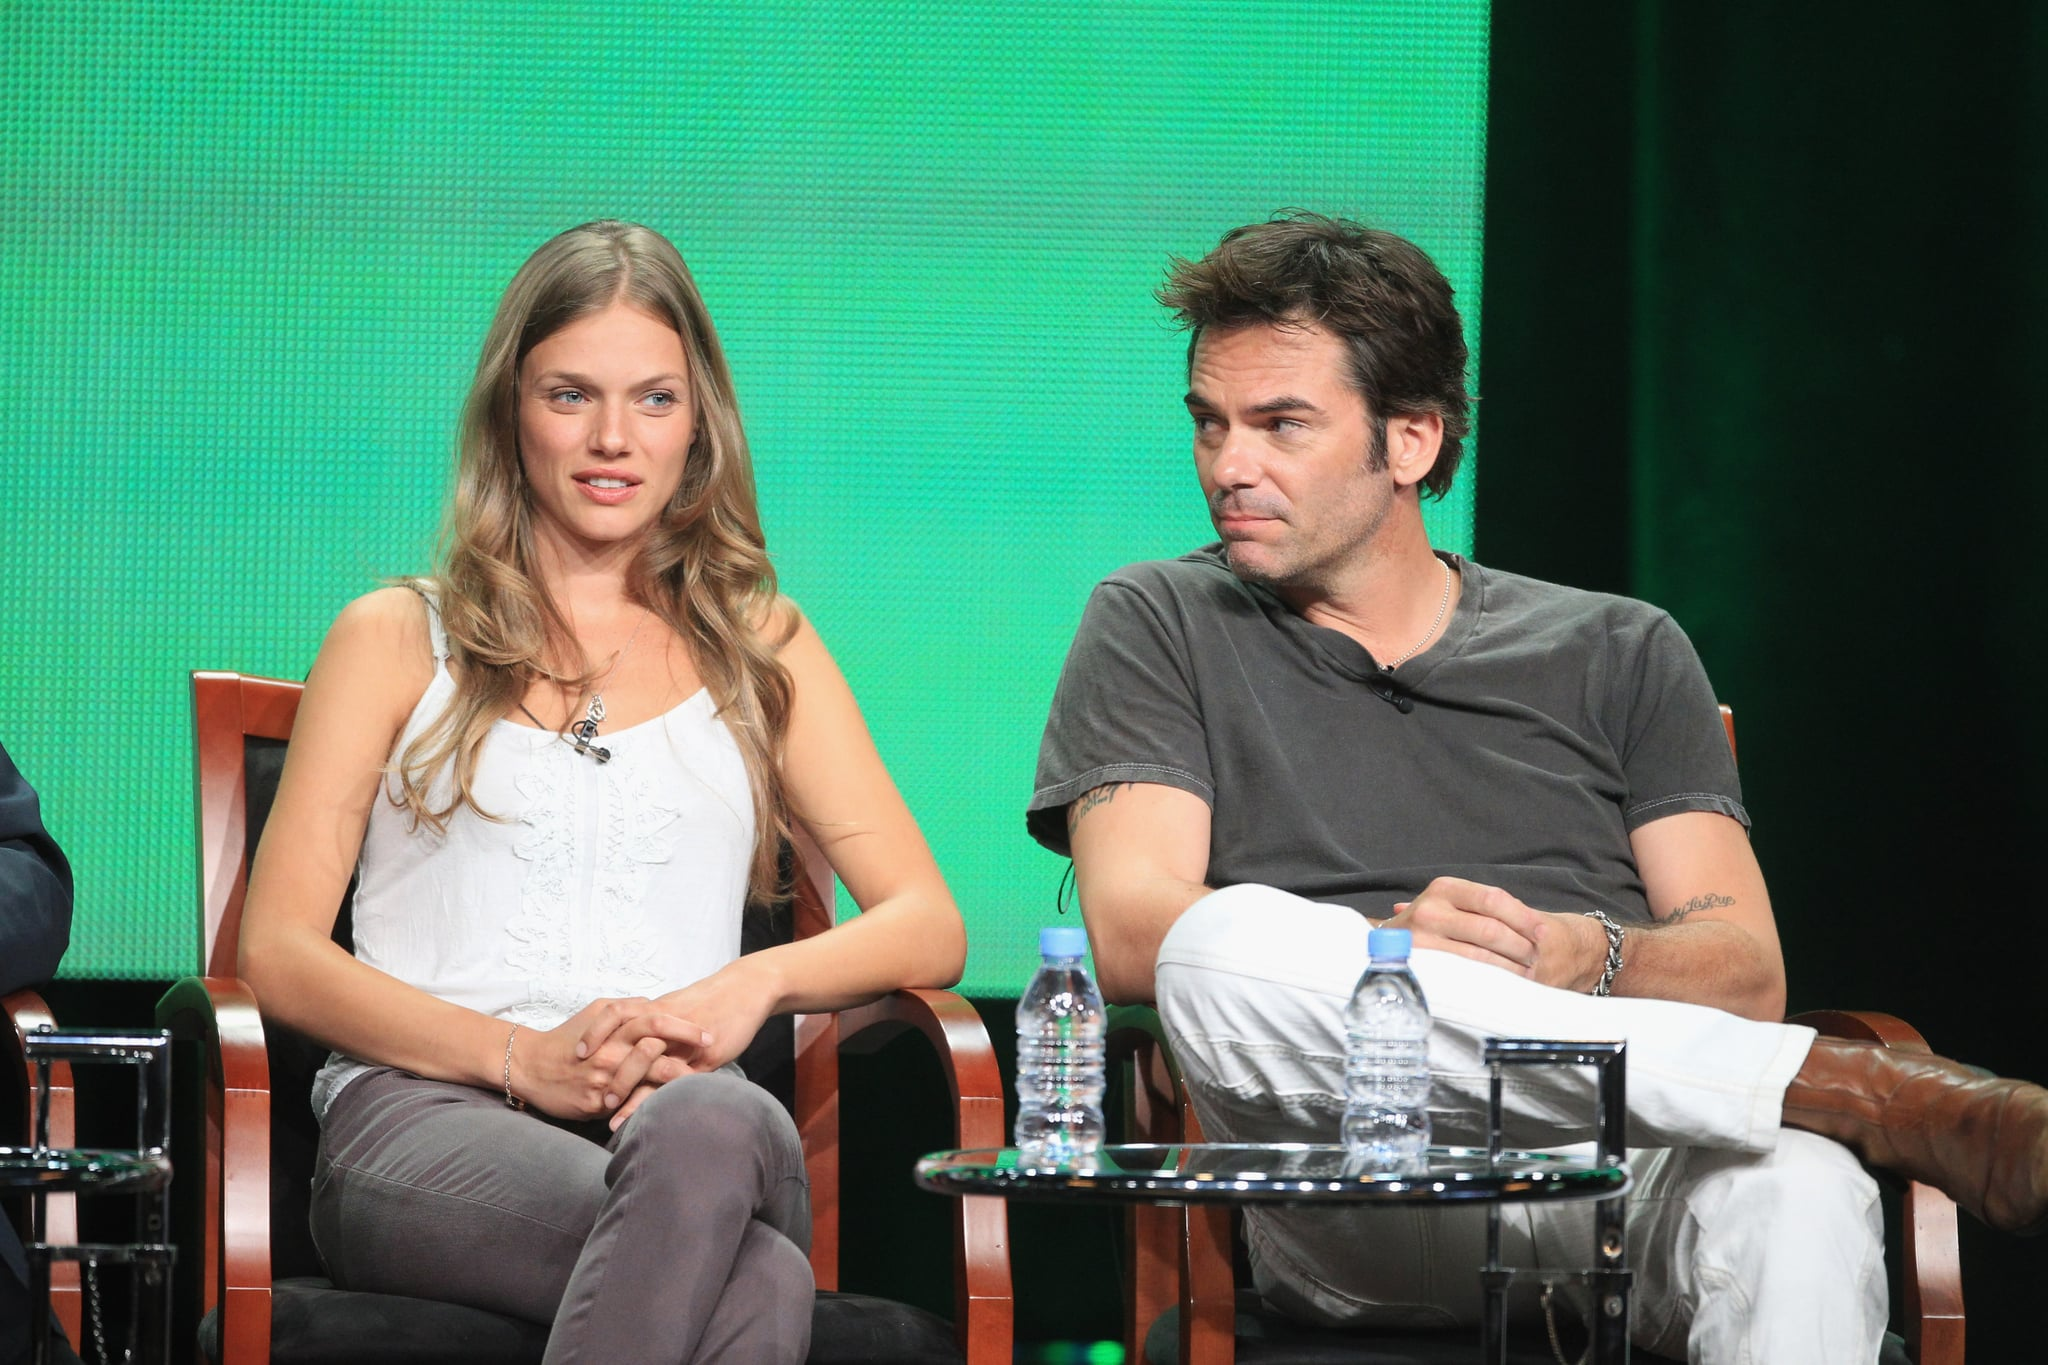 Stars Tracy Spiridakos and Billy Burke sat next to each other at the show's panel discussion.